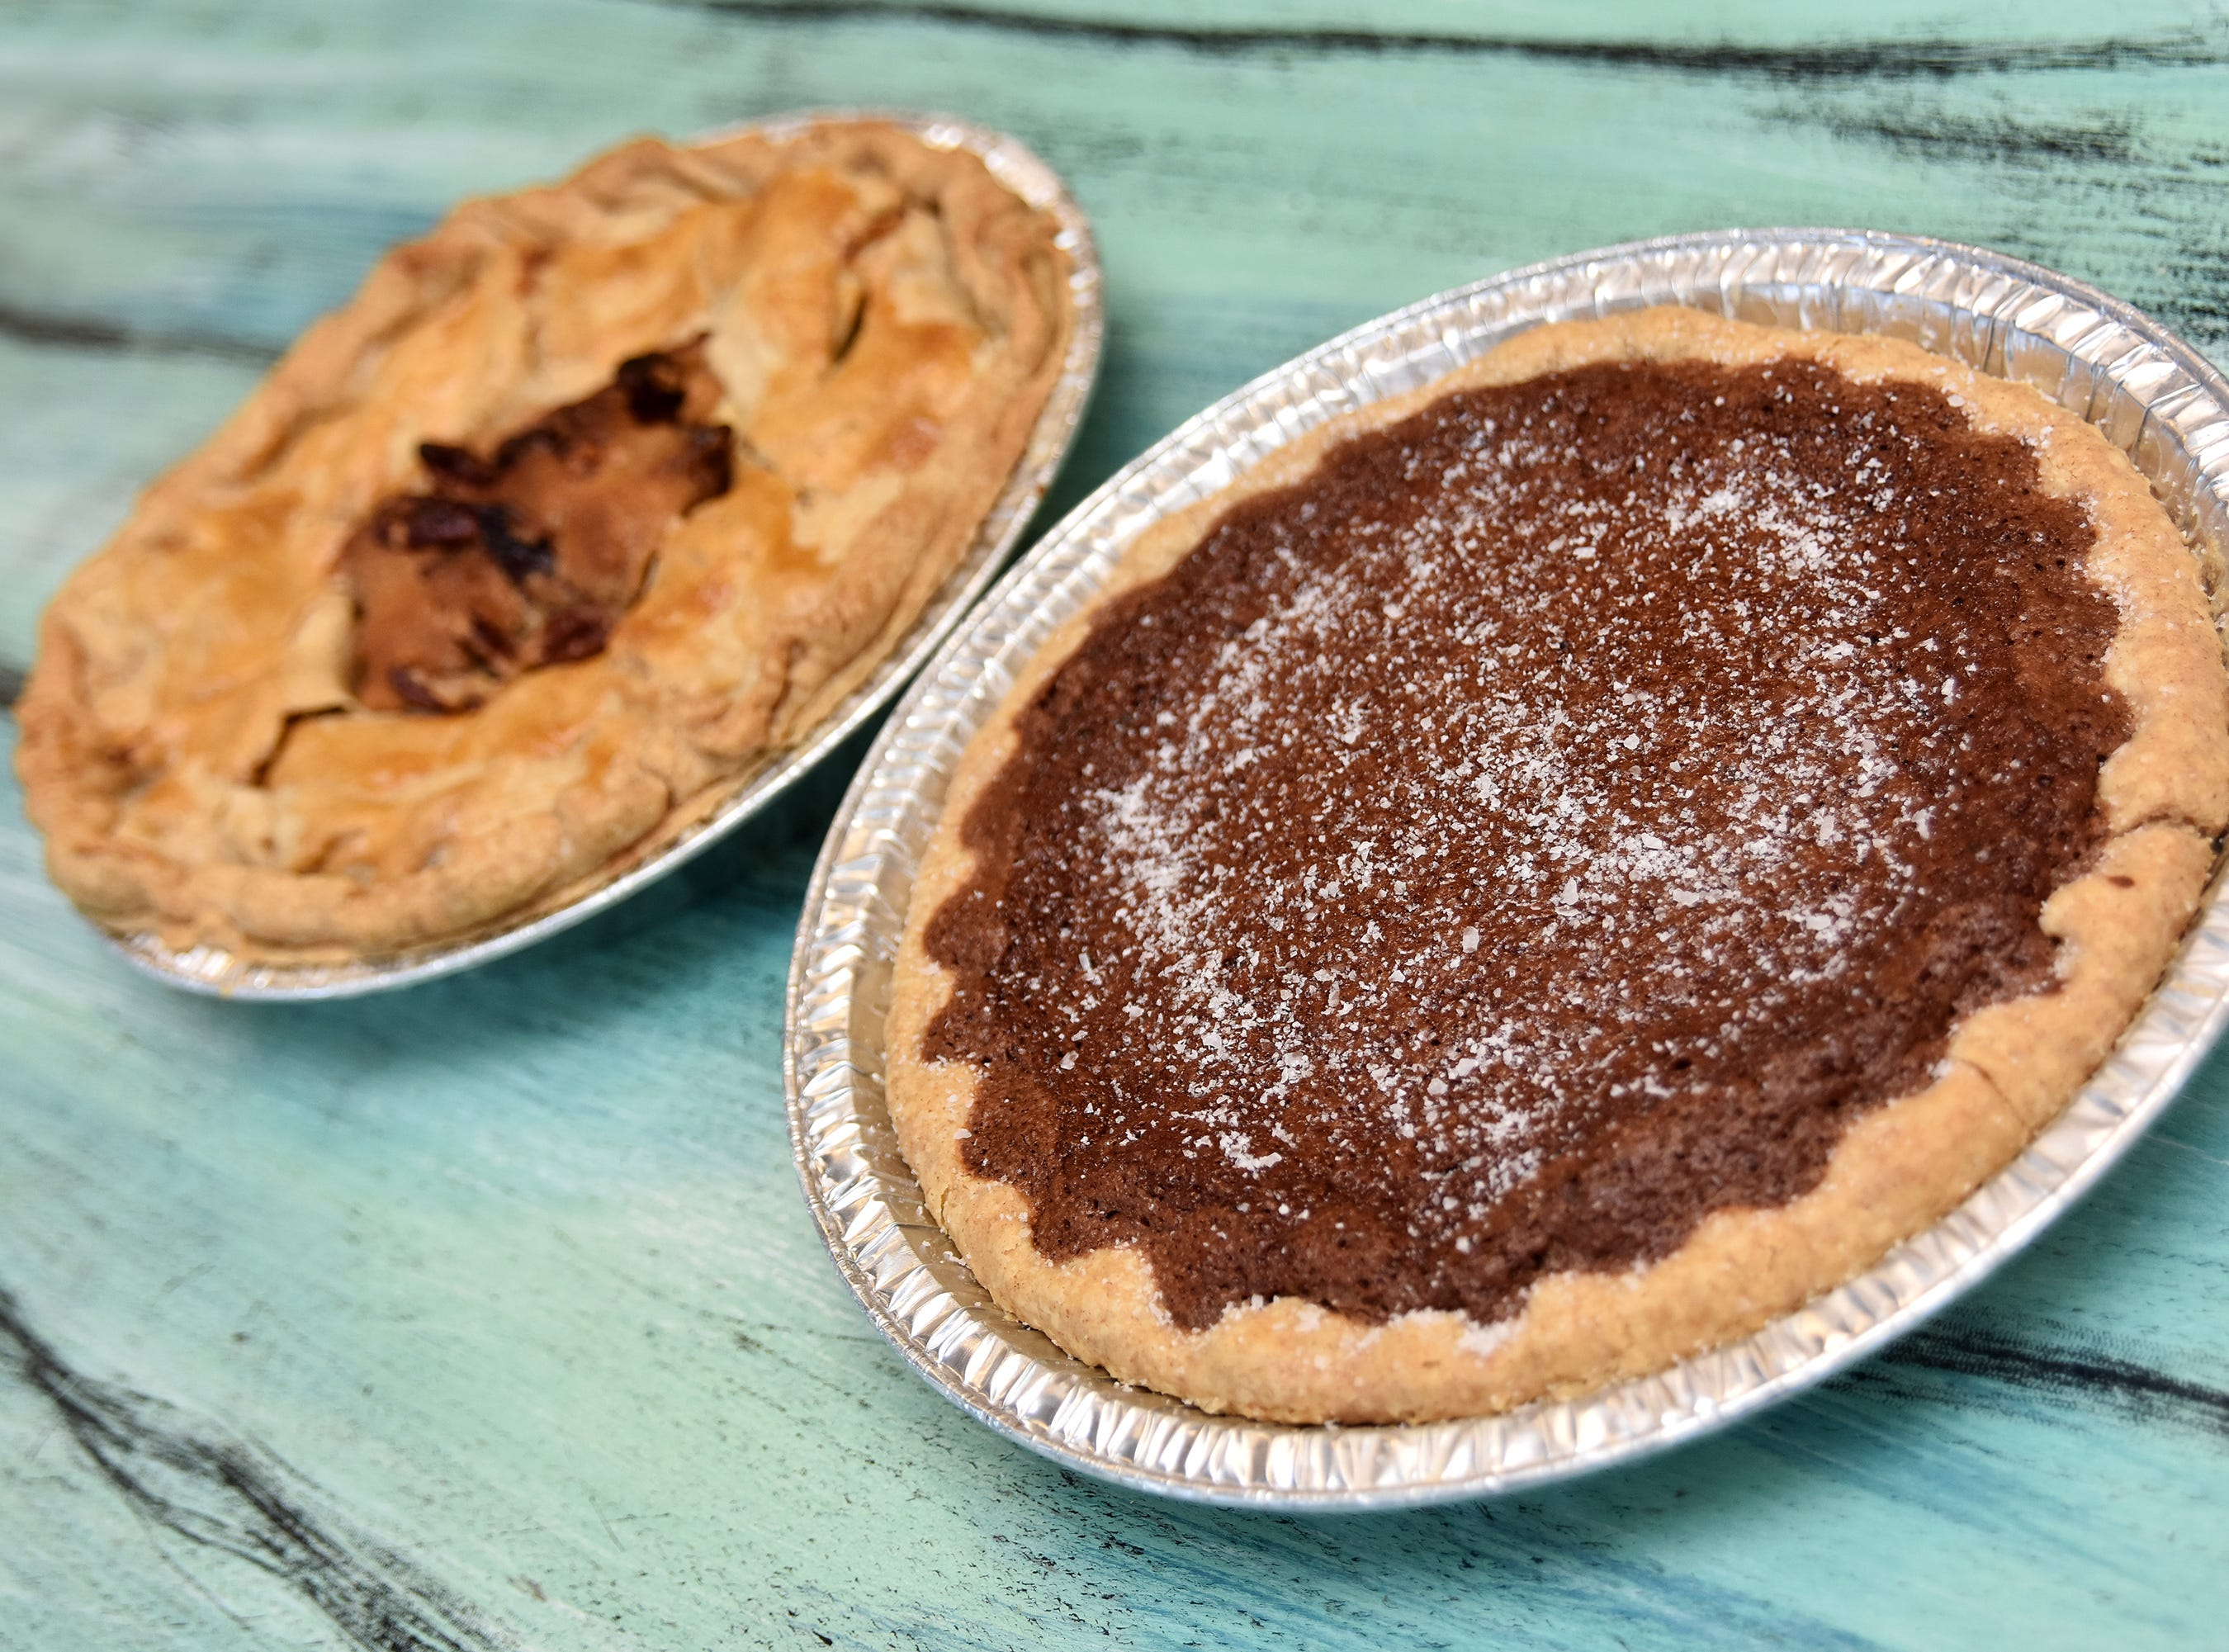 A salted chocolate pie and a bourbon apple pecan pie made by Jeannie Hall.